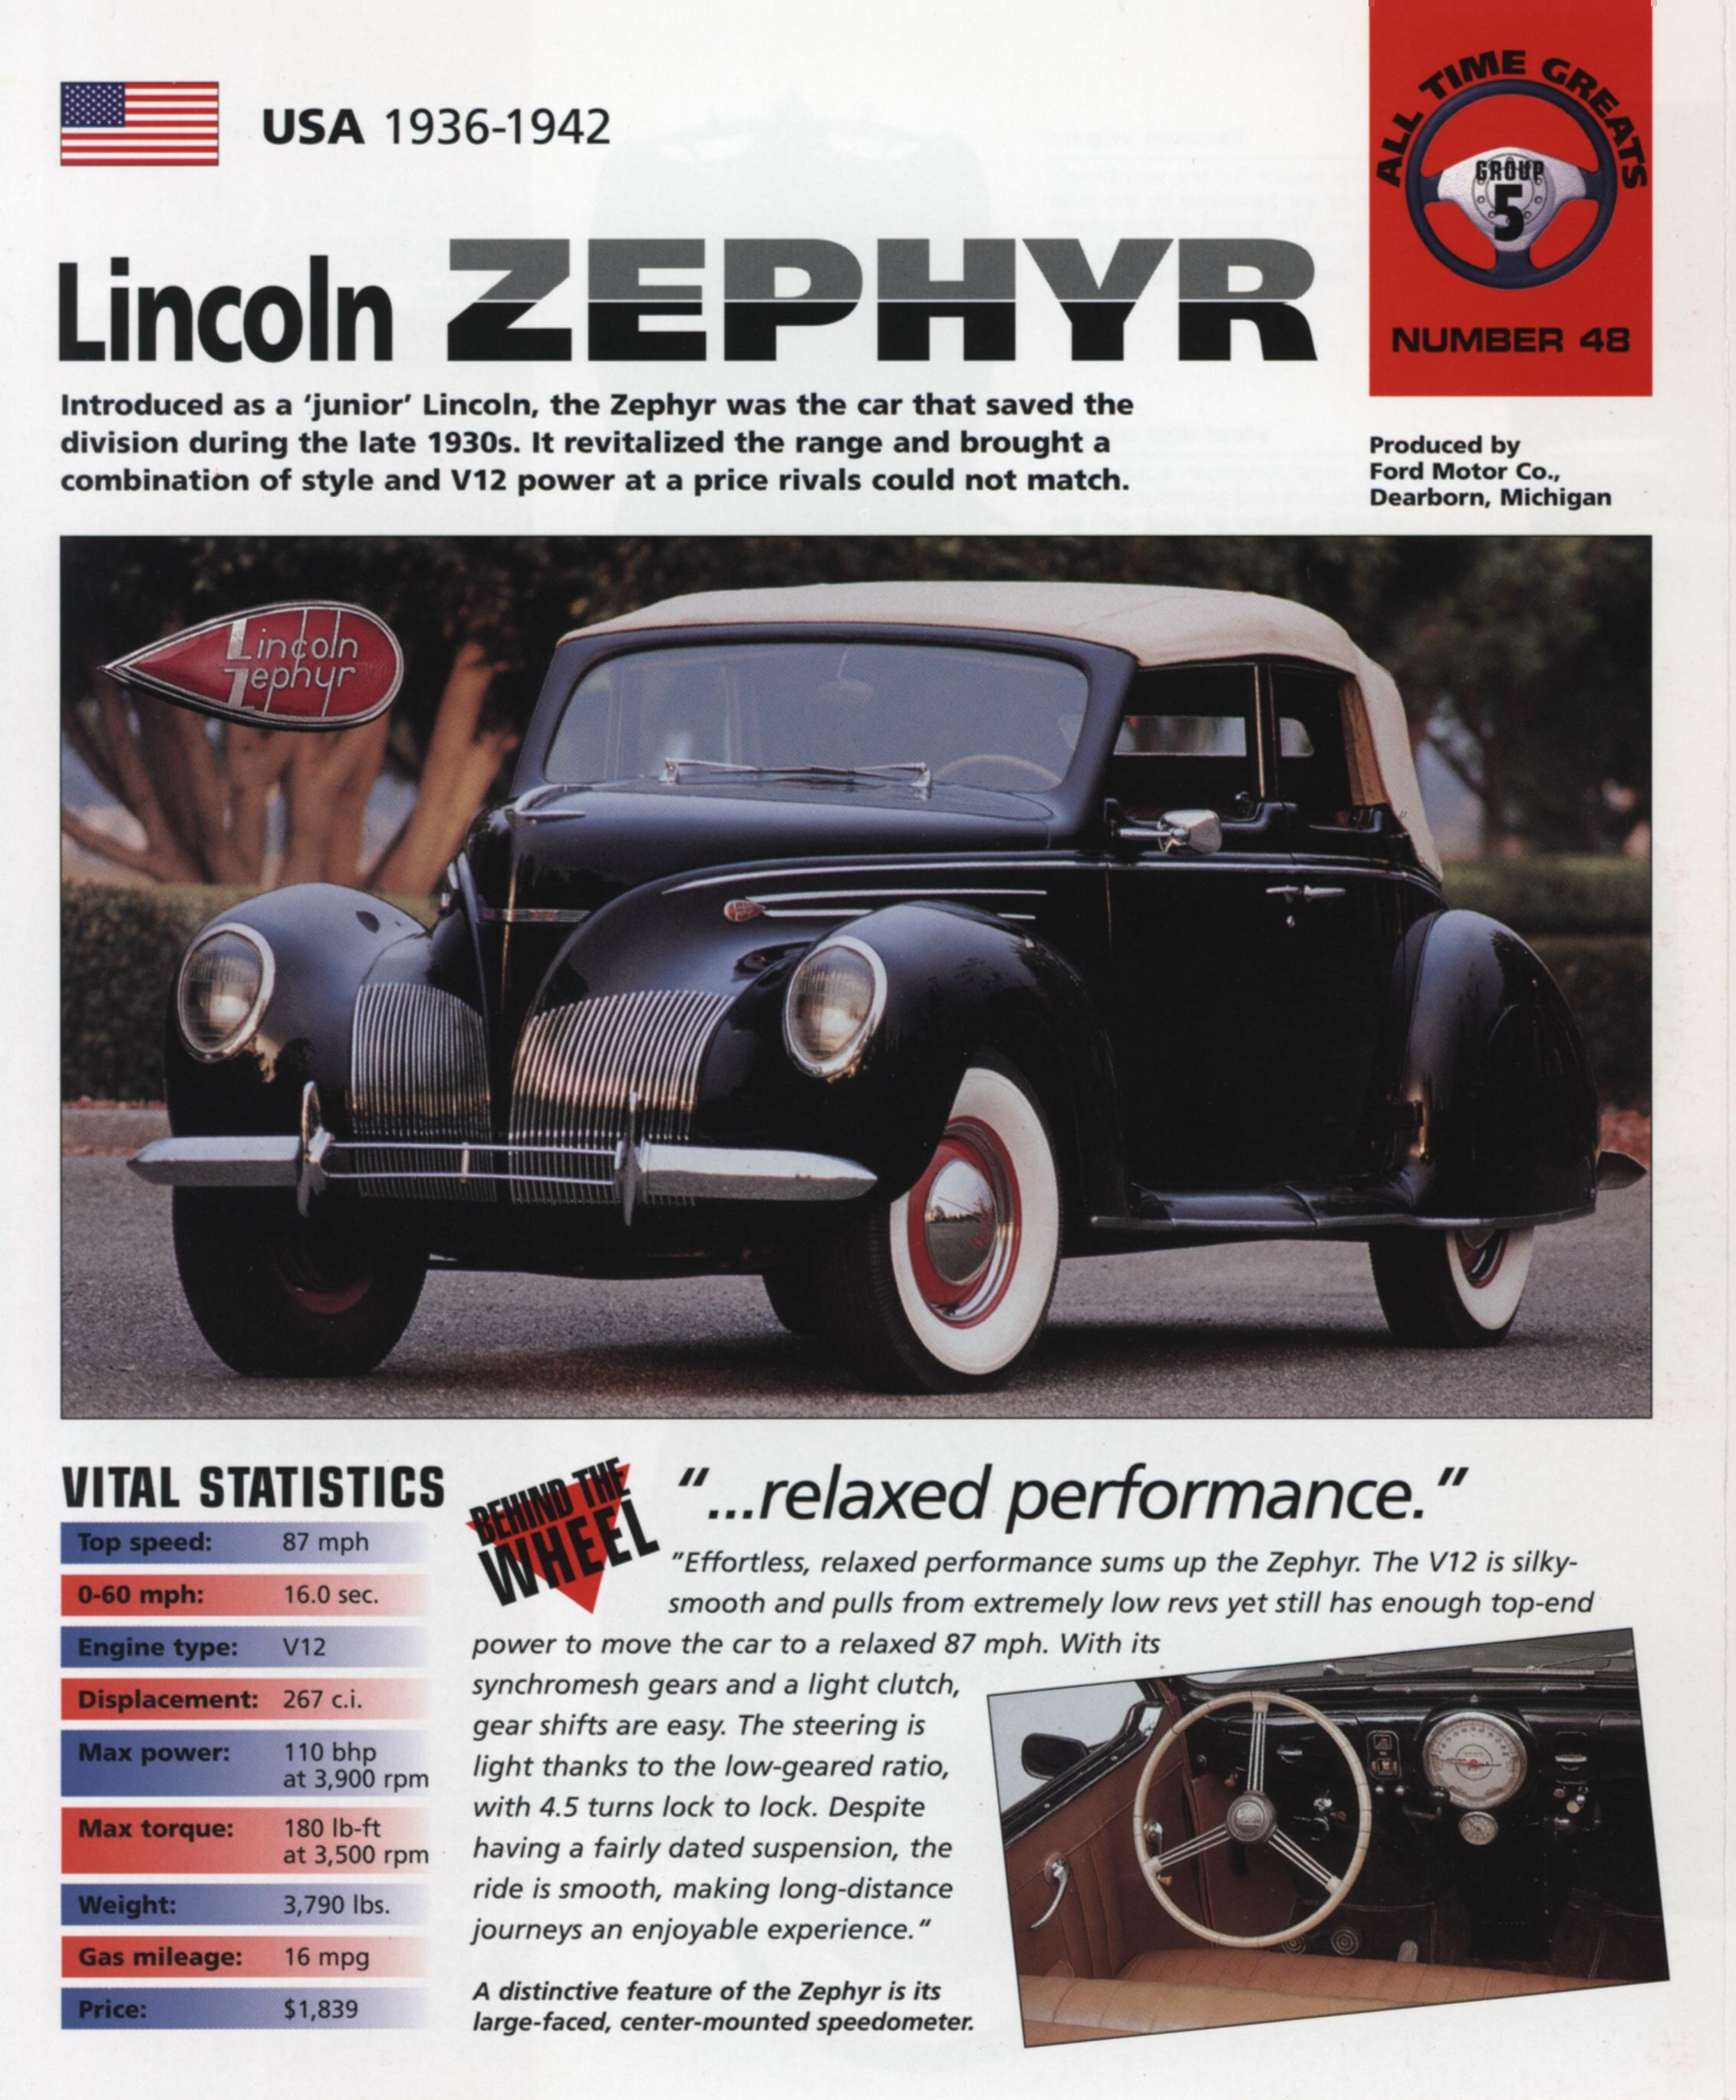 1936-42 Lincoln Zephyr - IMP Brochure